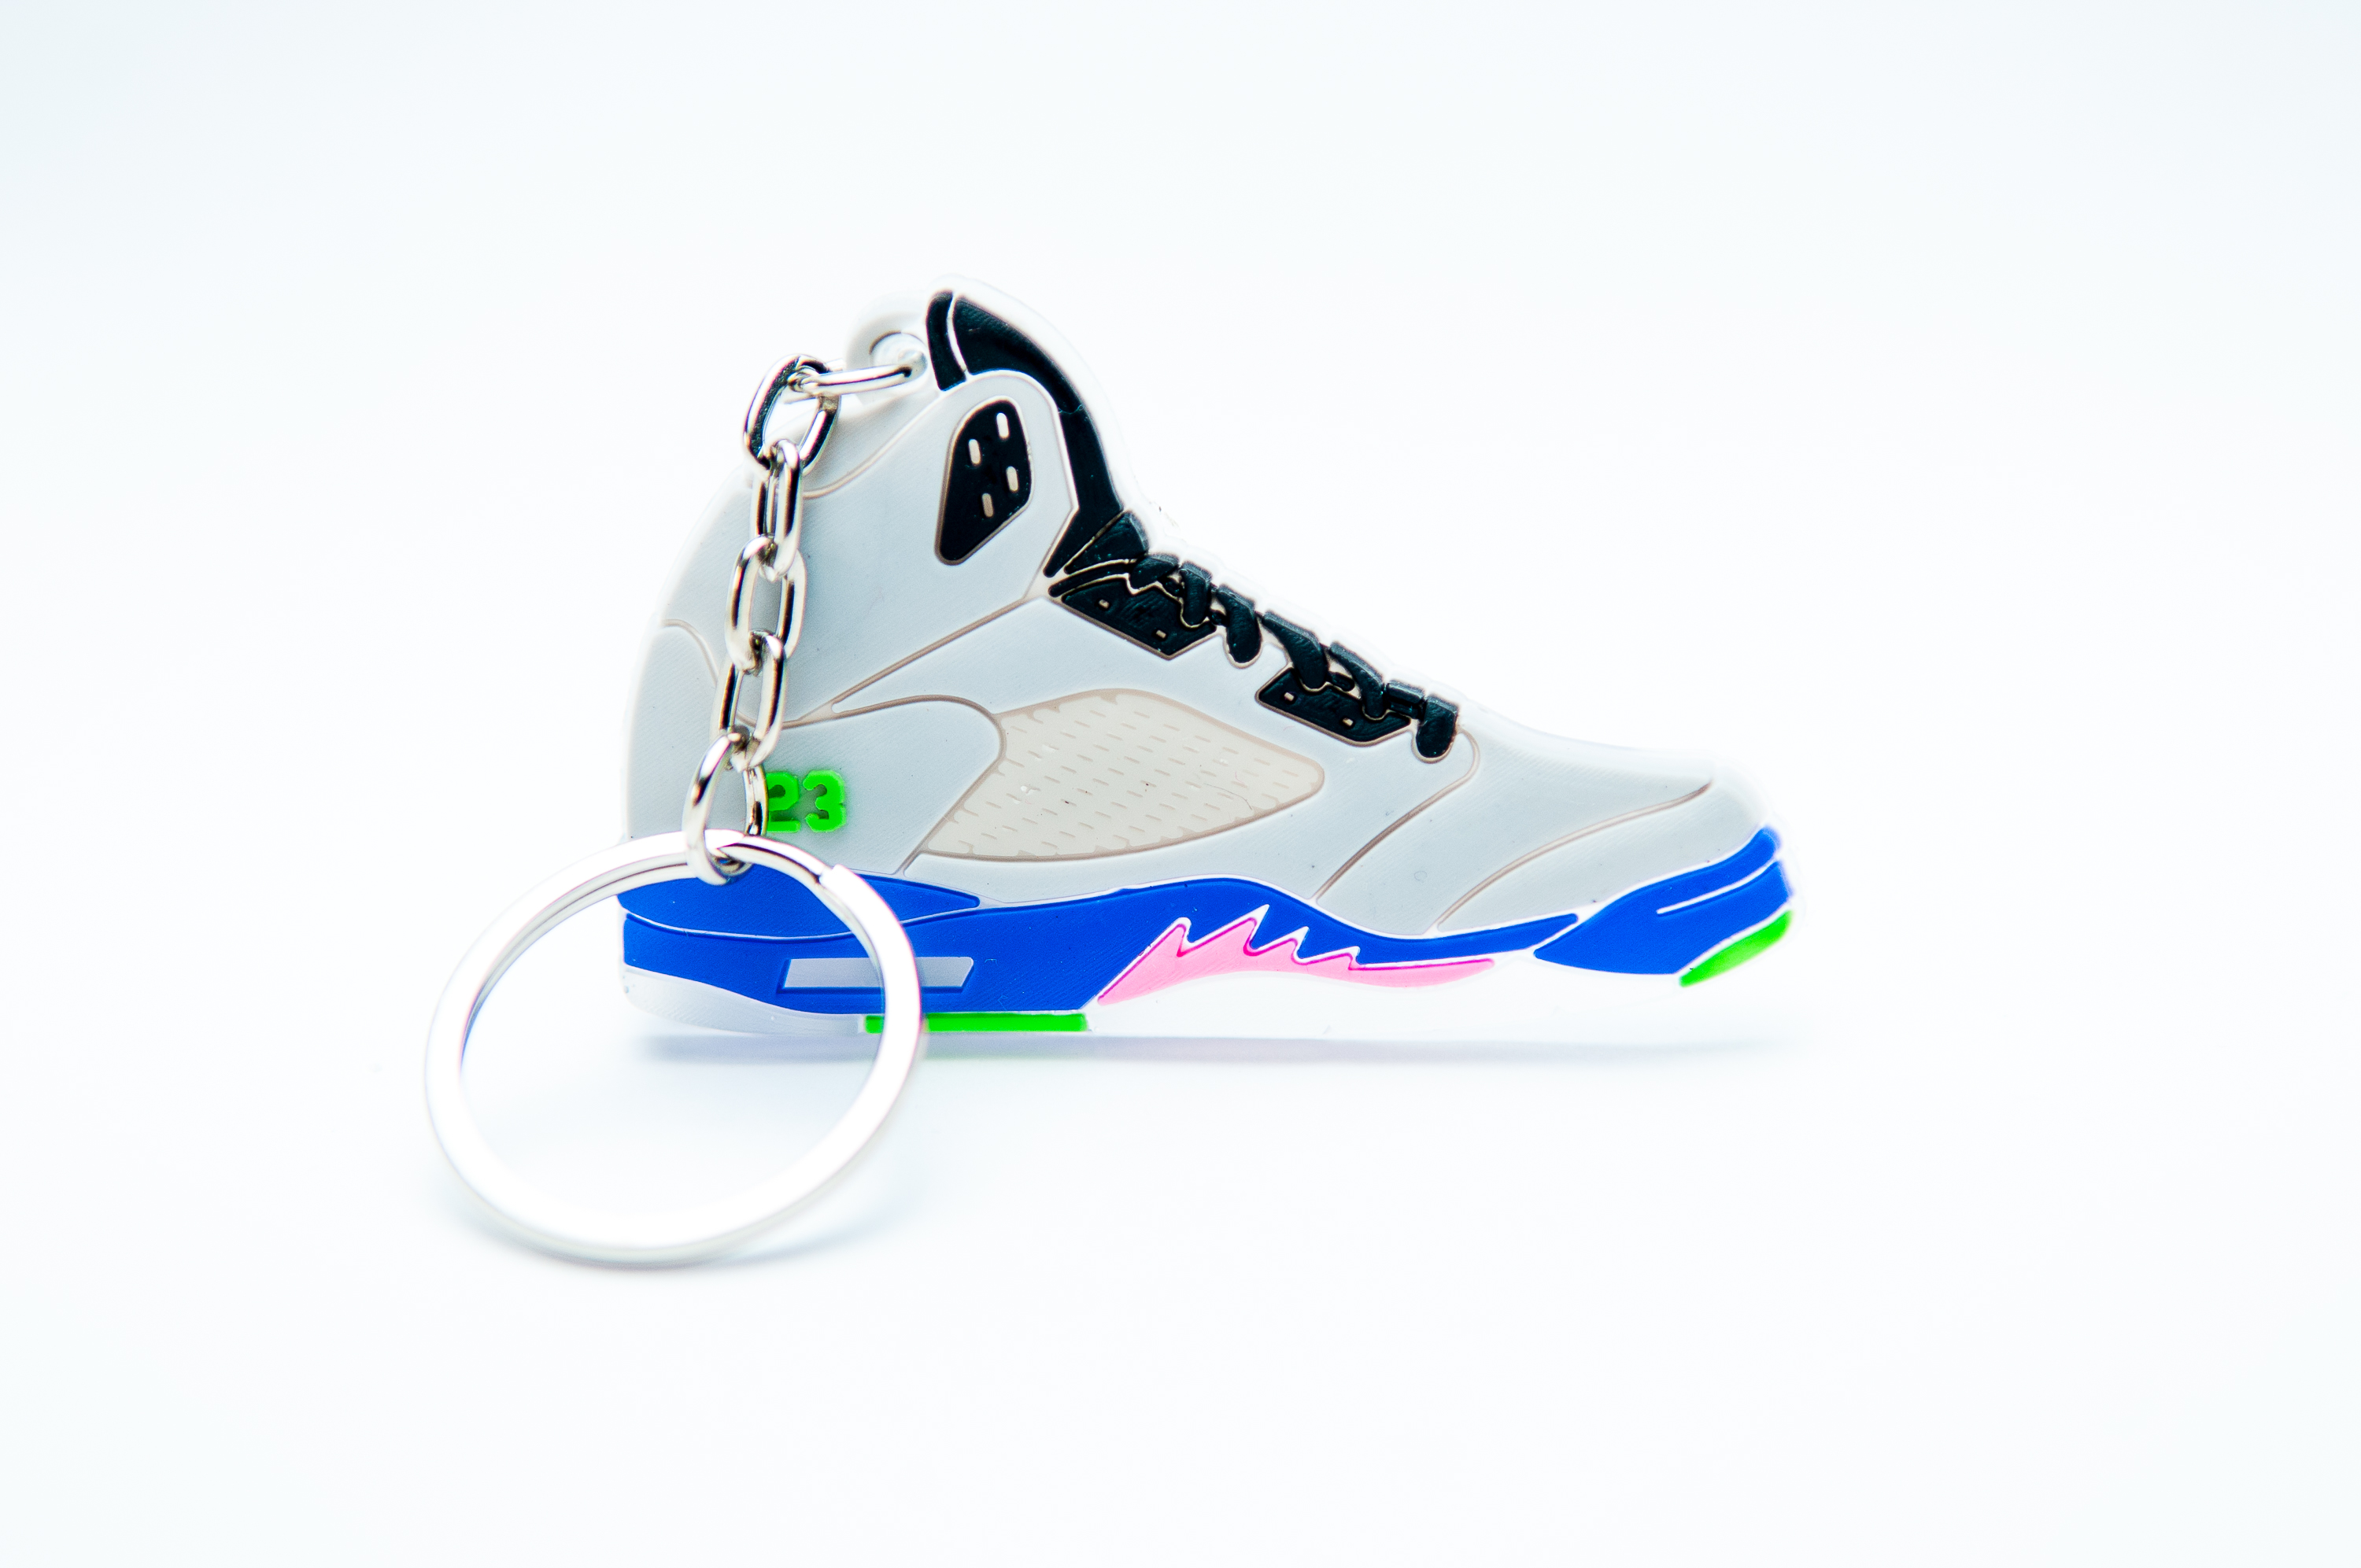 4eee14c9316171 Nike Air Jordan 5 Retro Bel Air Grey Purple Pink - Kool keyringsKool  keyrings